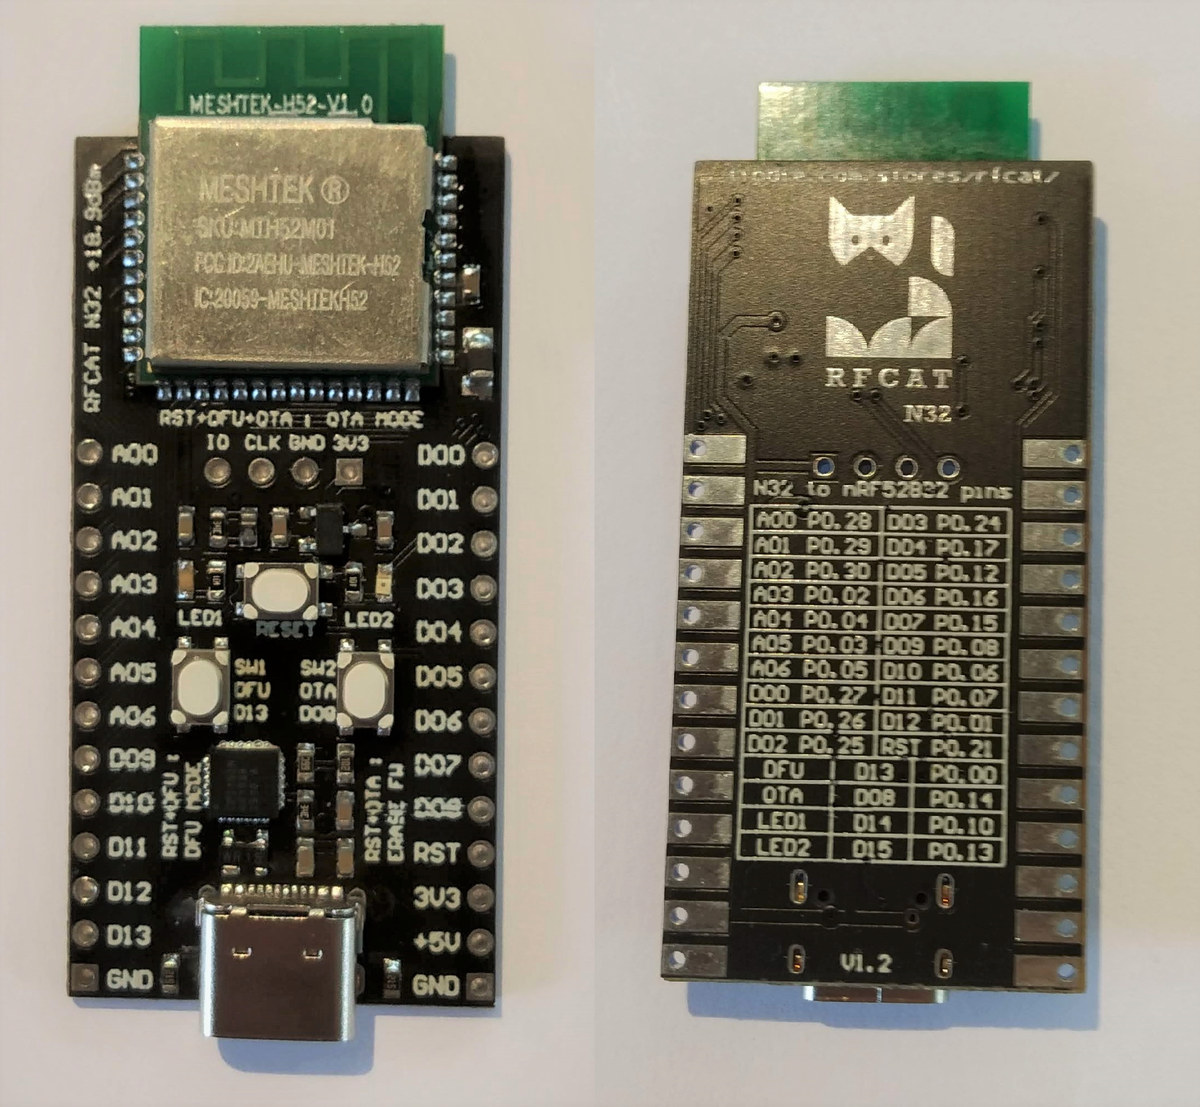 RFCat N32 Long Range Bluetooth Board